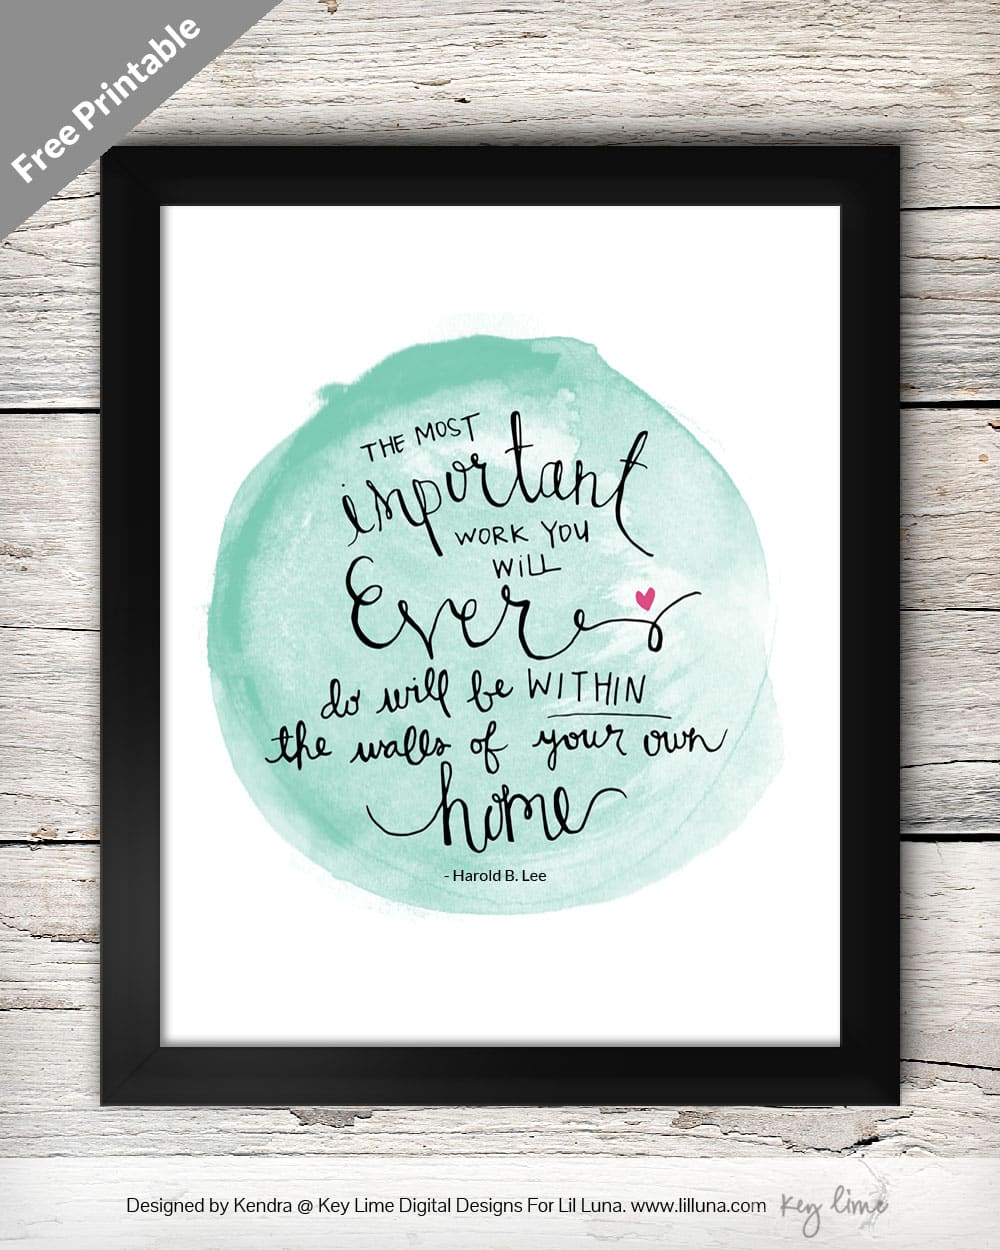 The Most Important Work You will ever do will be within the walls of your own home - LOVE this quote! Free print on { lilluna.com } This makes great decor or as a gift!!